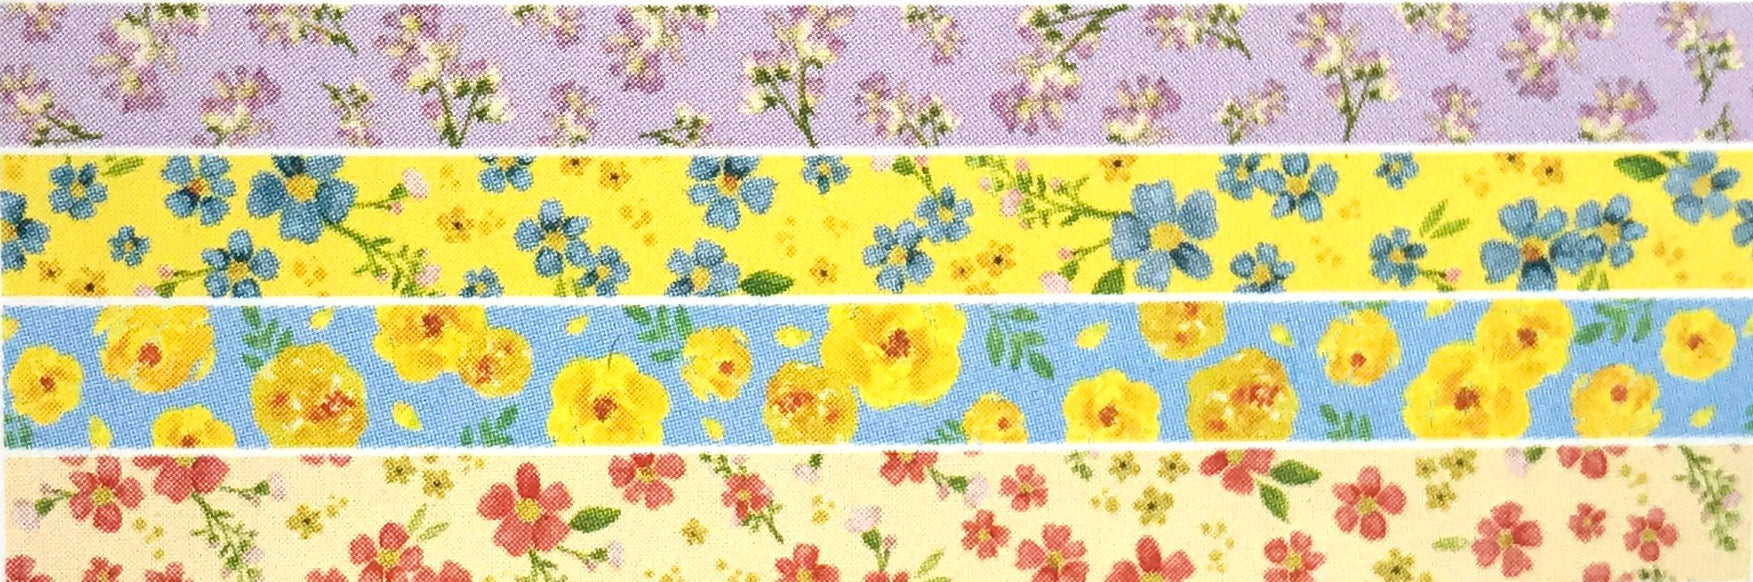 Flower Pattern Washi Tape